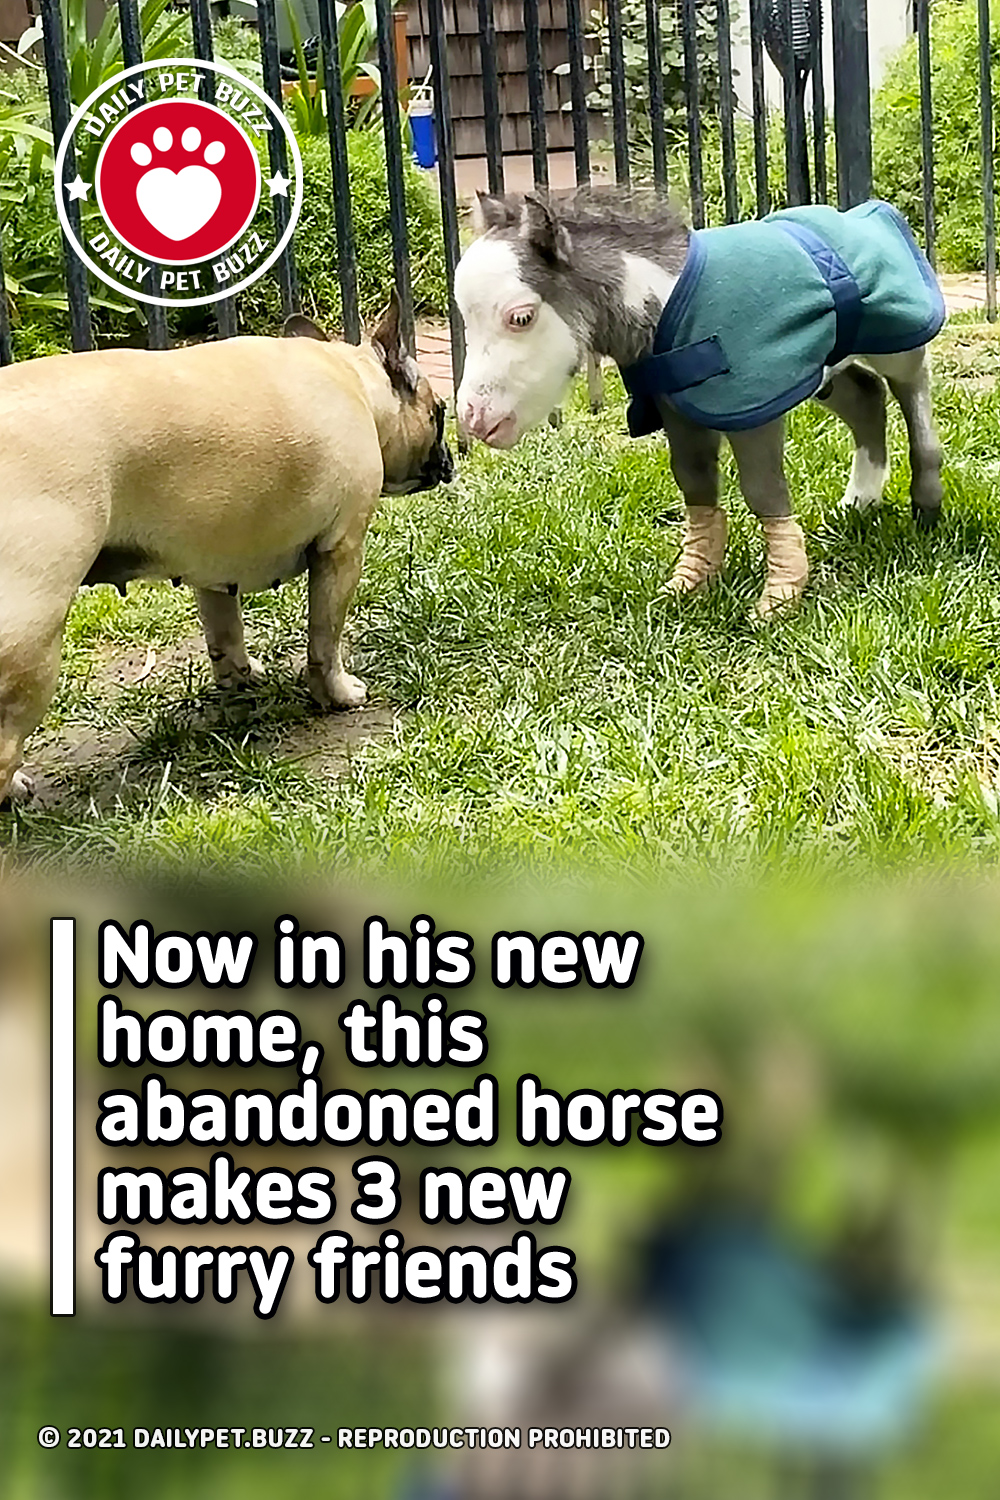 Now in his new home, this abandoned horse makes 3 new furry friends